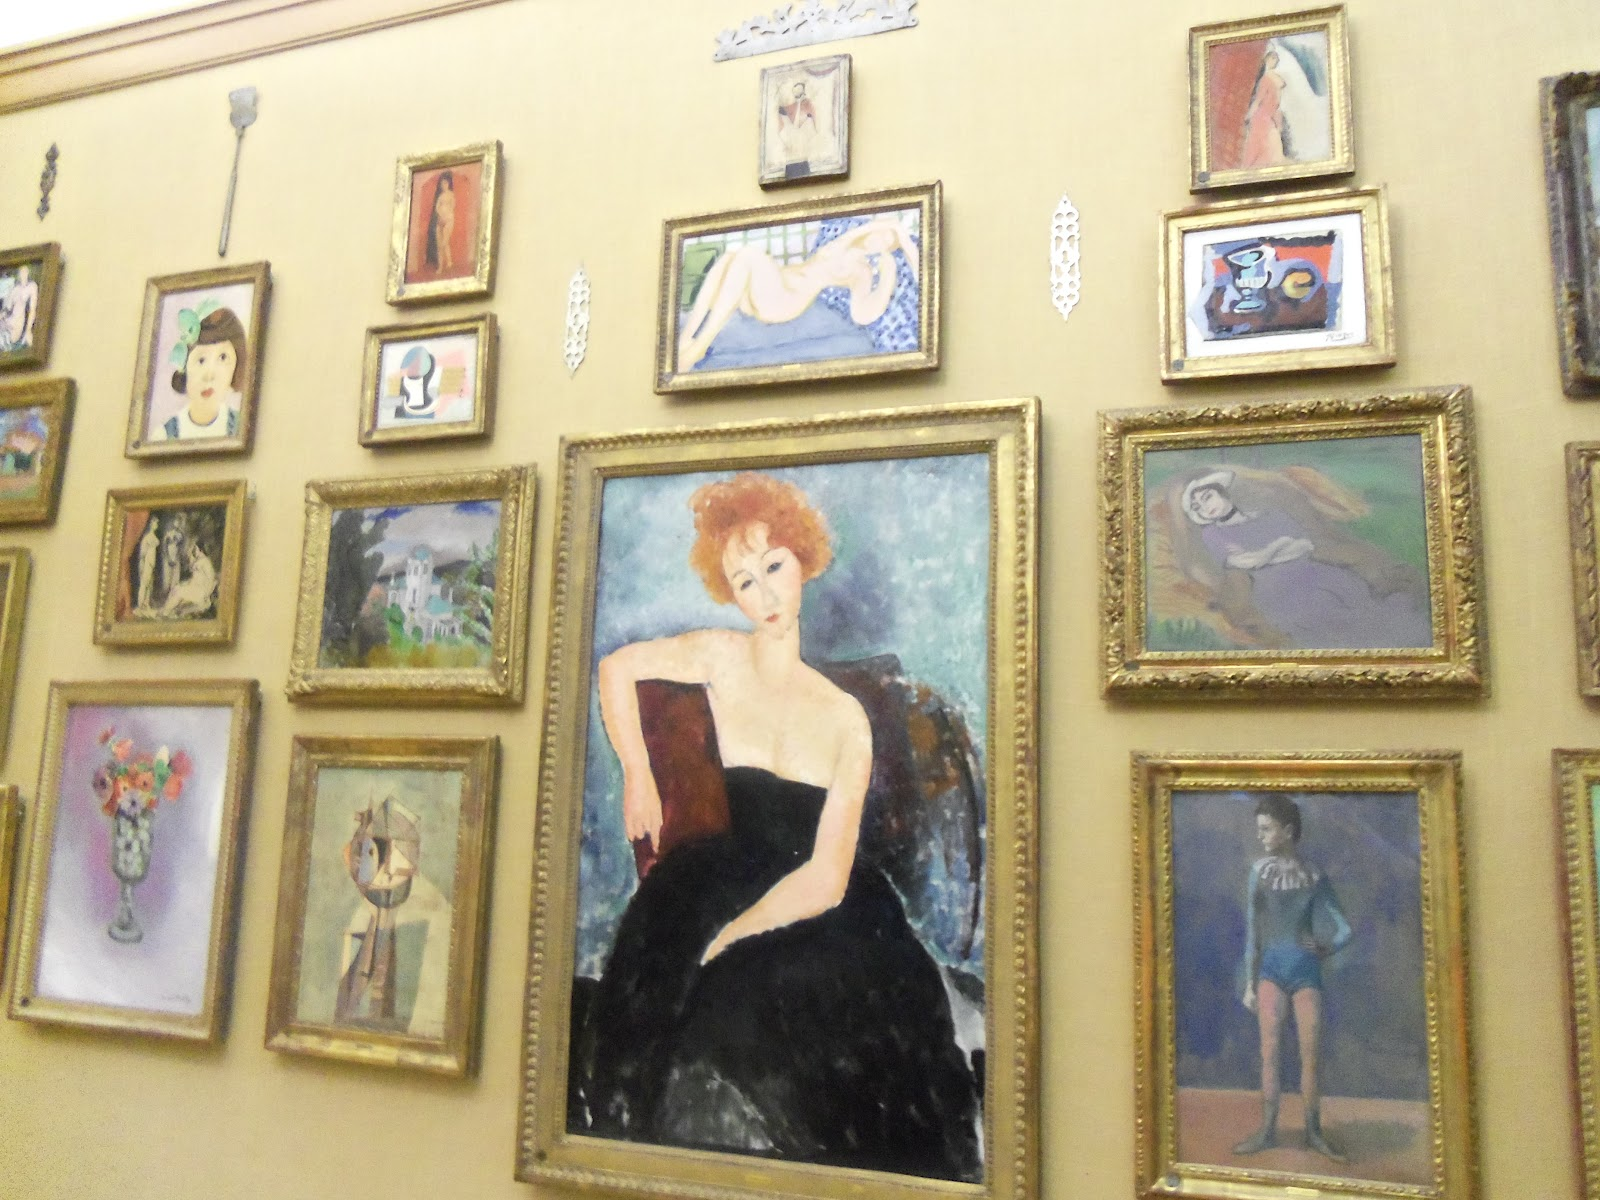 Barnes Breathtaking Impressionist Collection Reopens